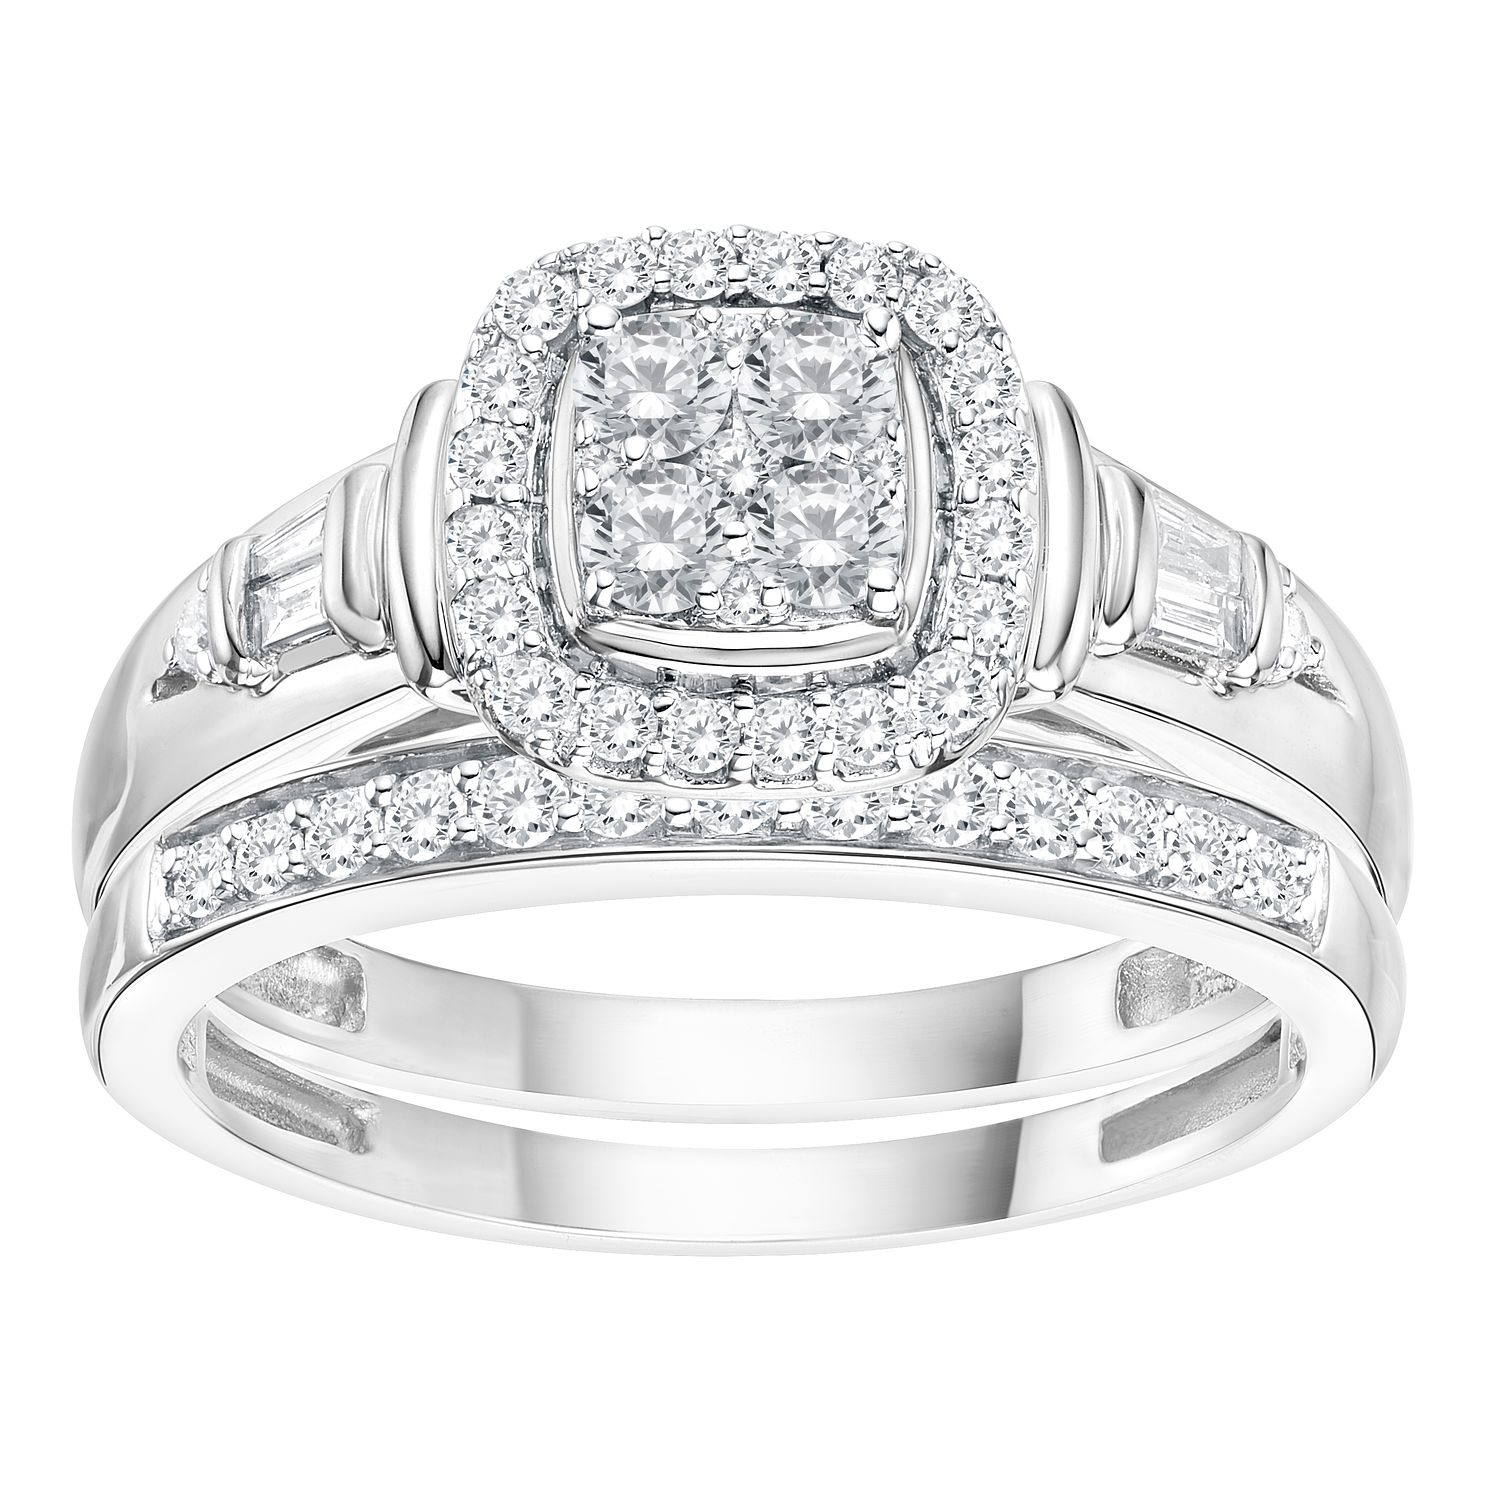 solitaire halo rings of engagement dollar diamond cushion elegant wedding ring